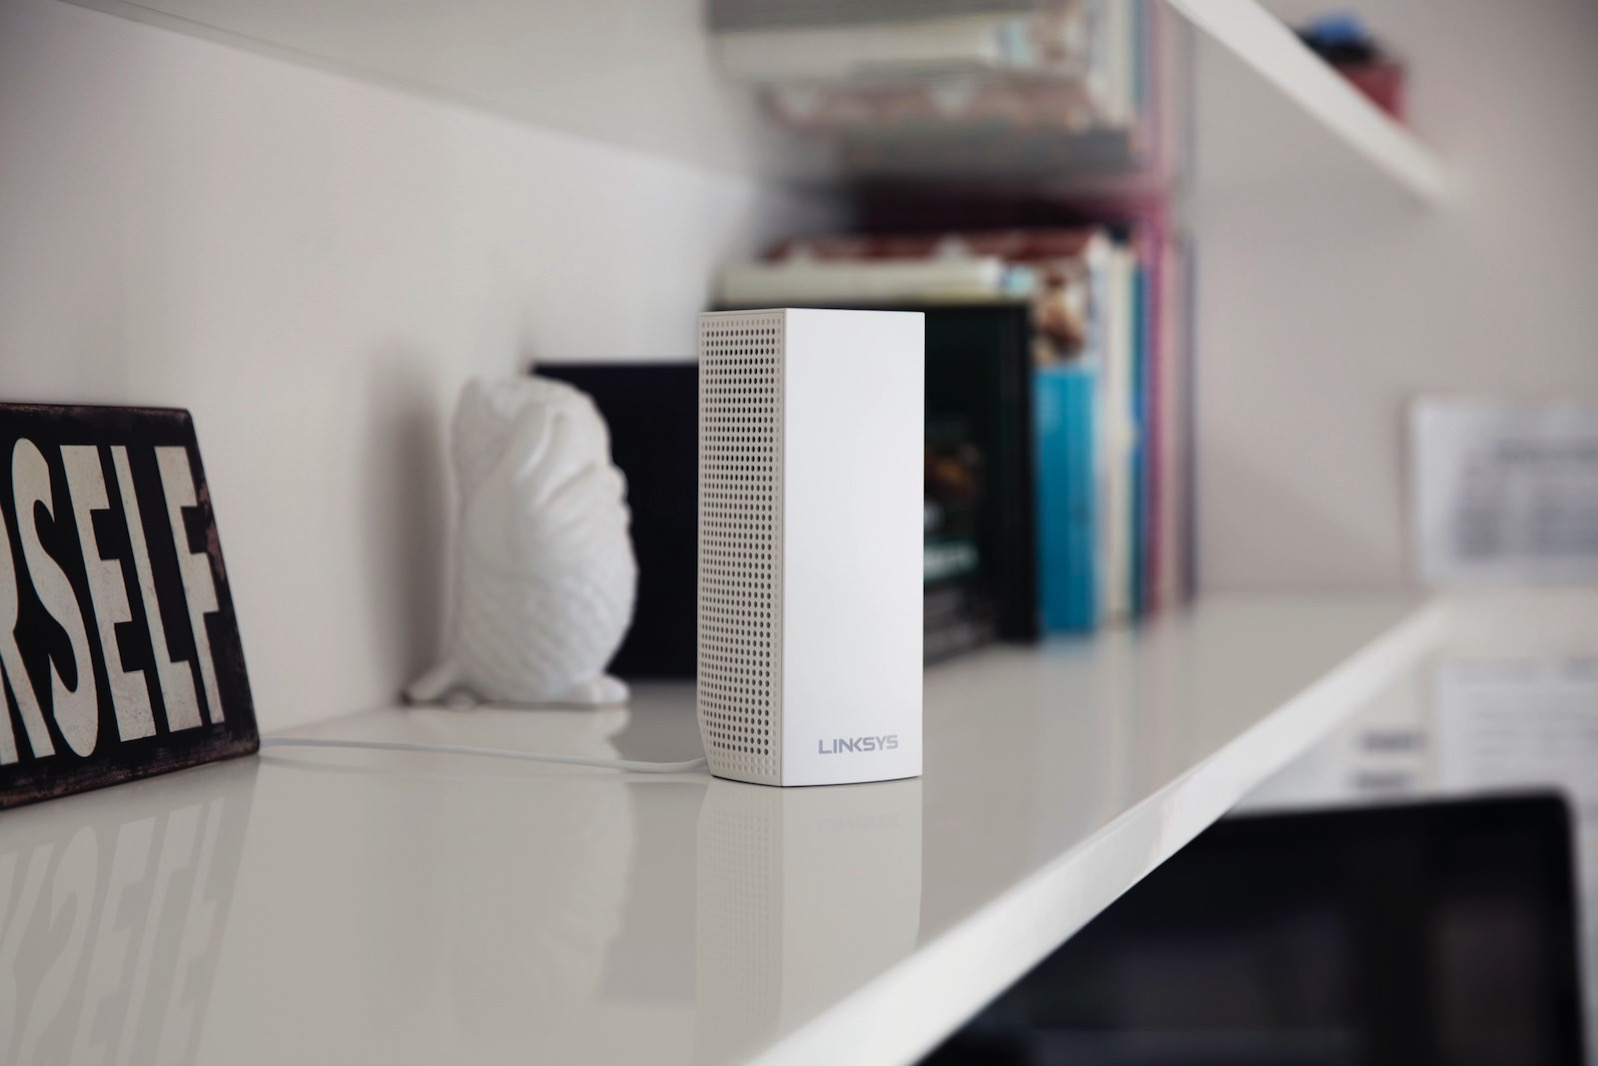 Linksys-Velop-WiFi-Router-3.jpg